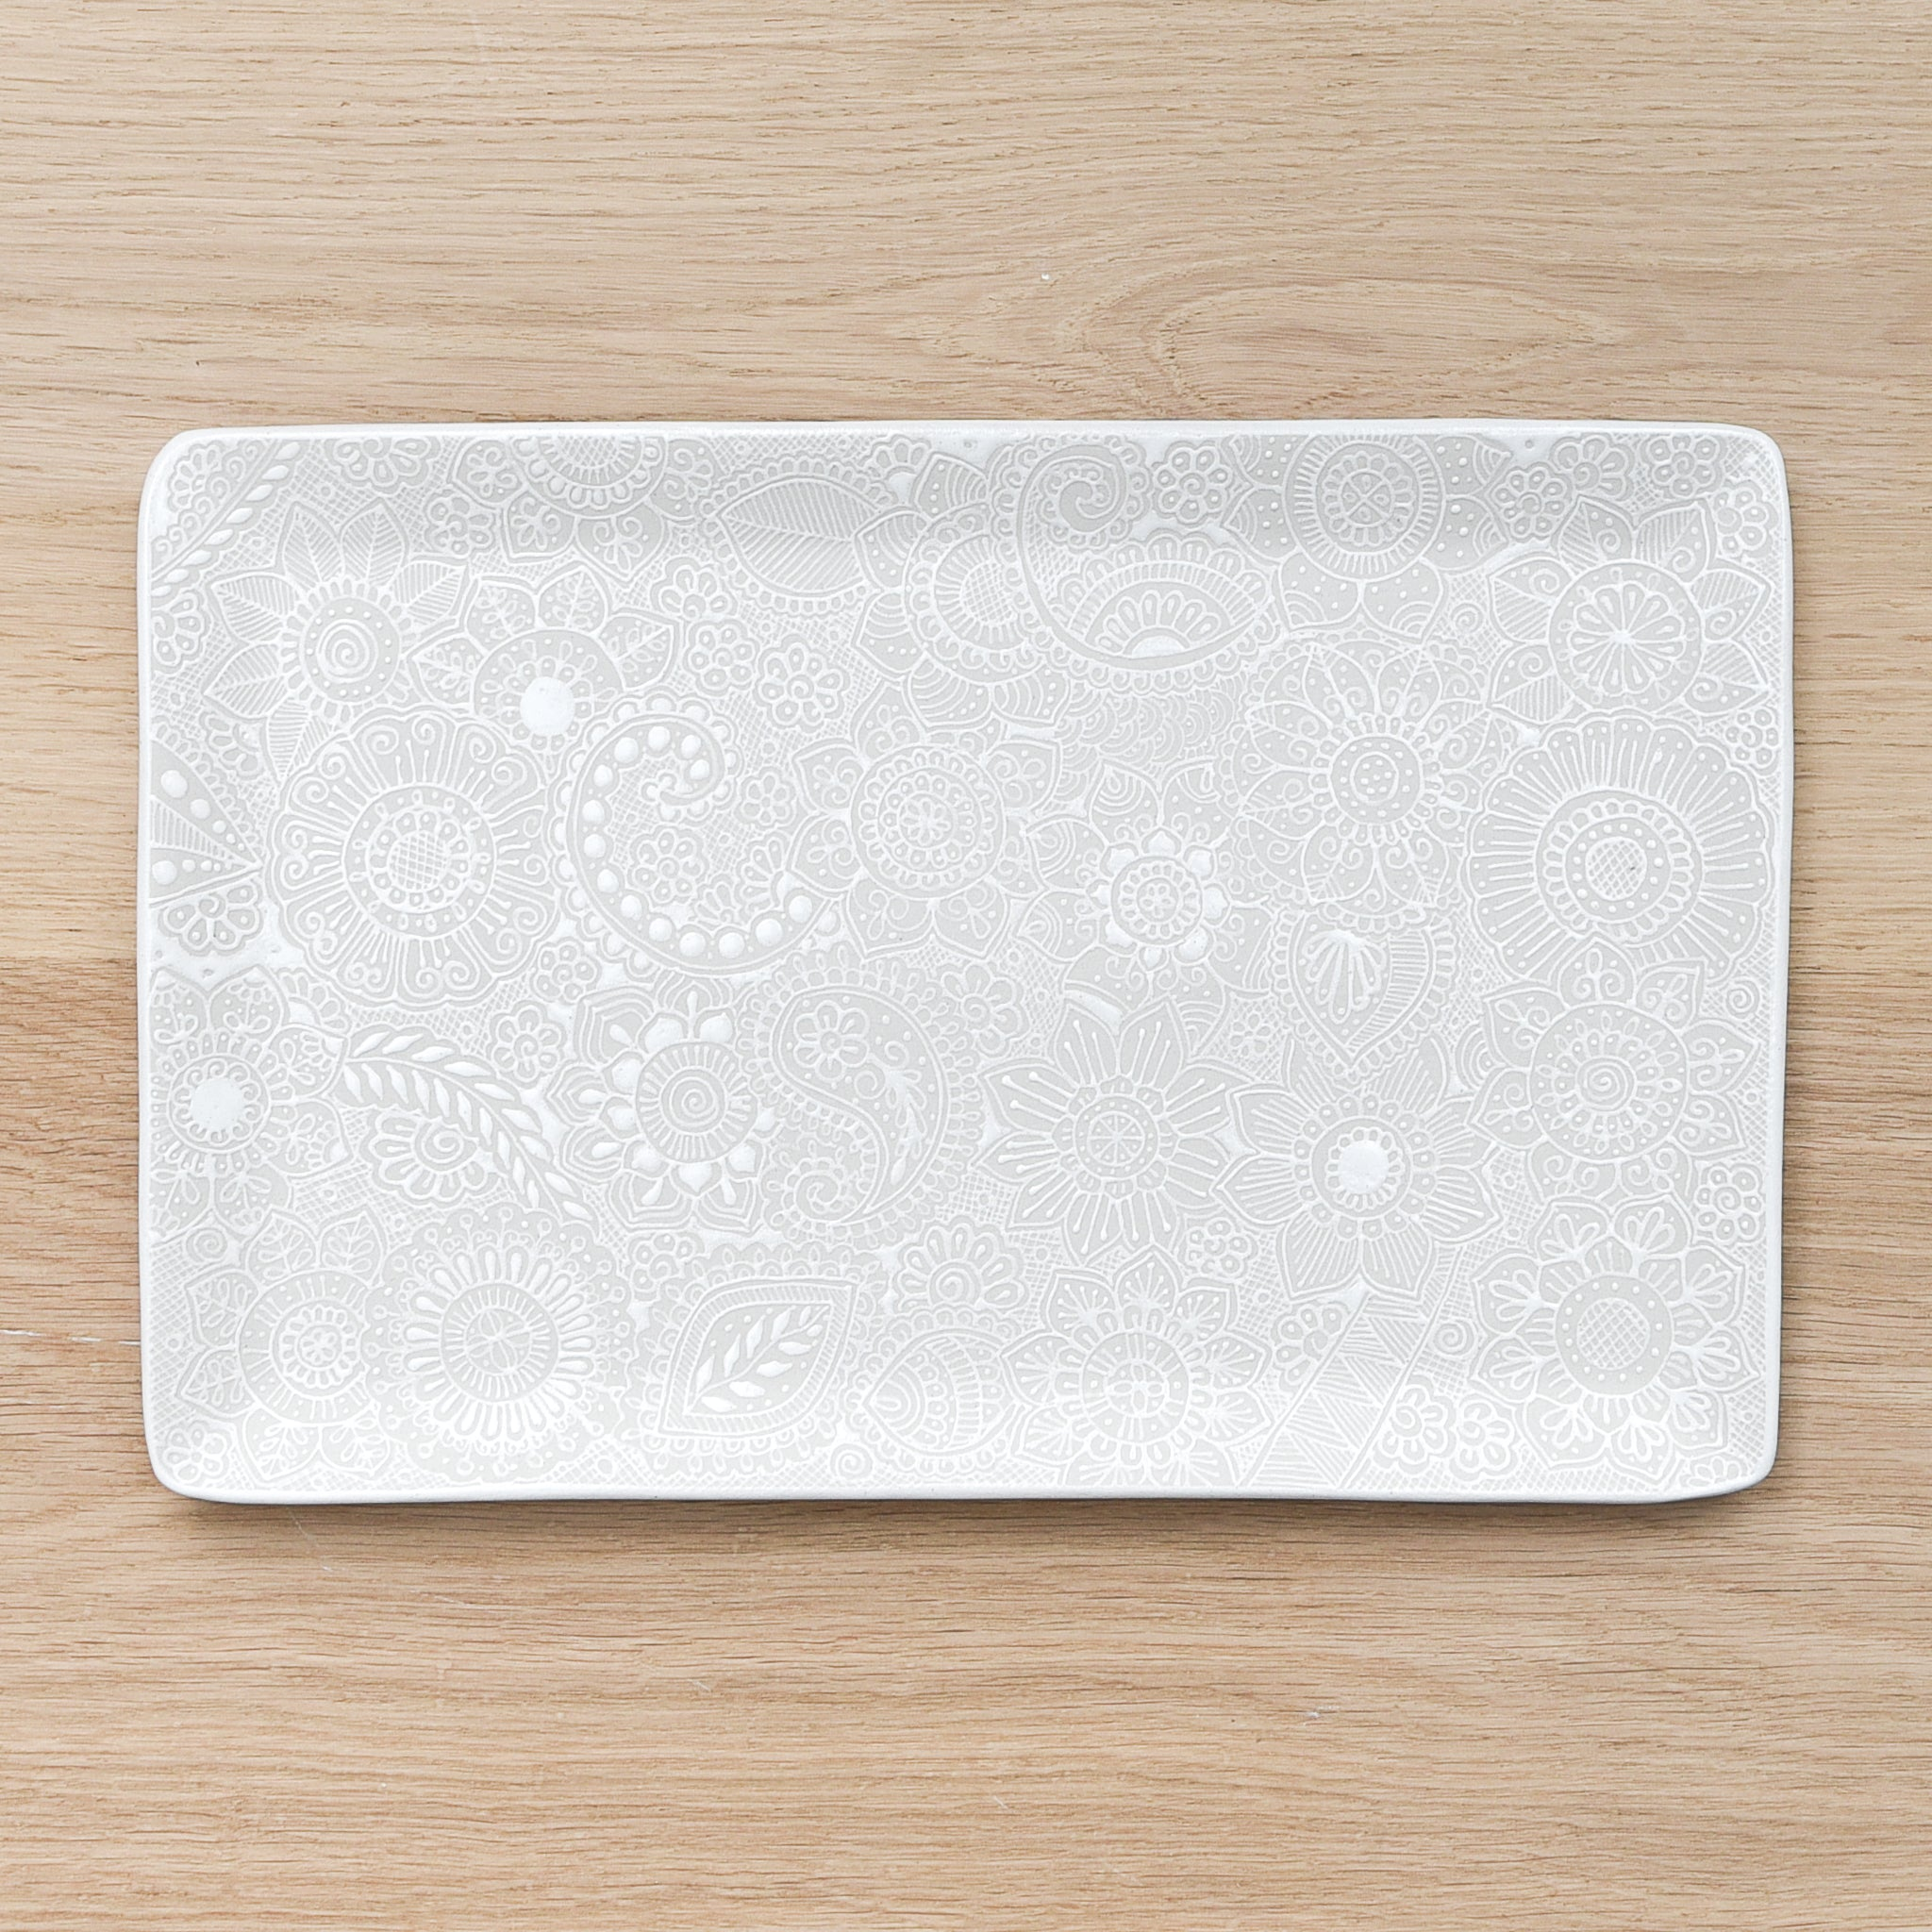 A large white ceramic serving tray made in Mexico on a light wood table.